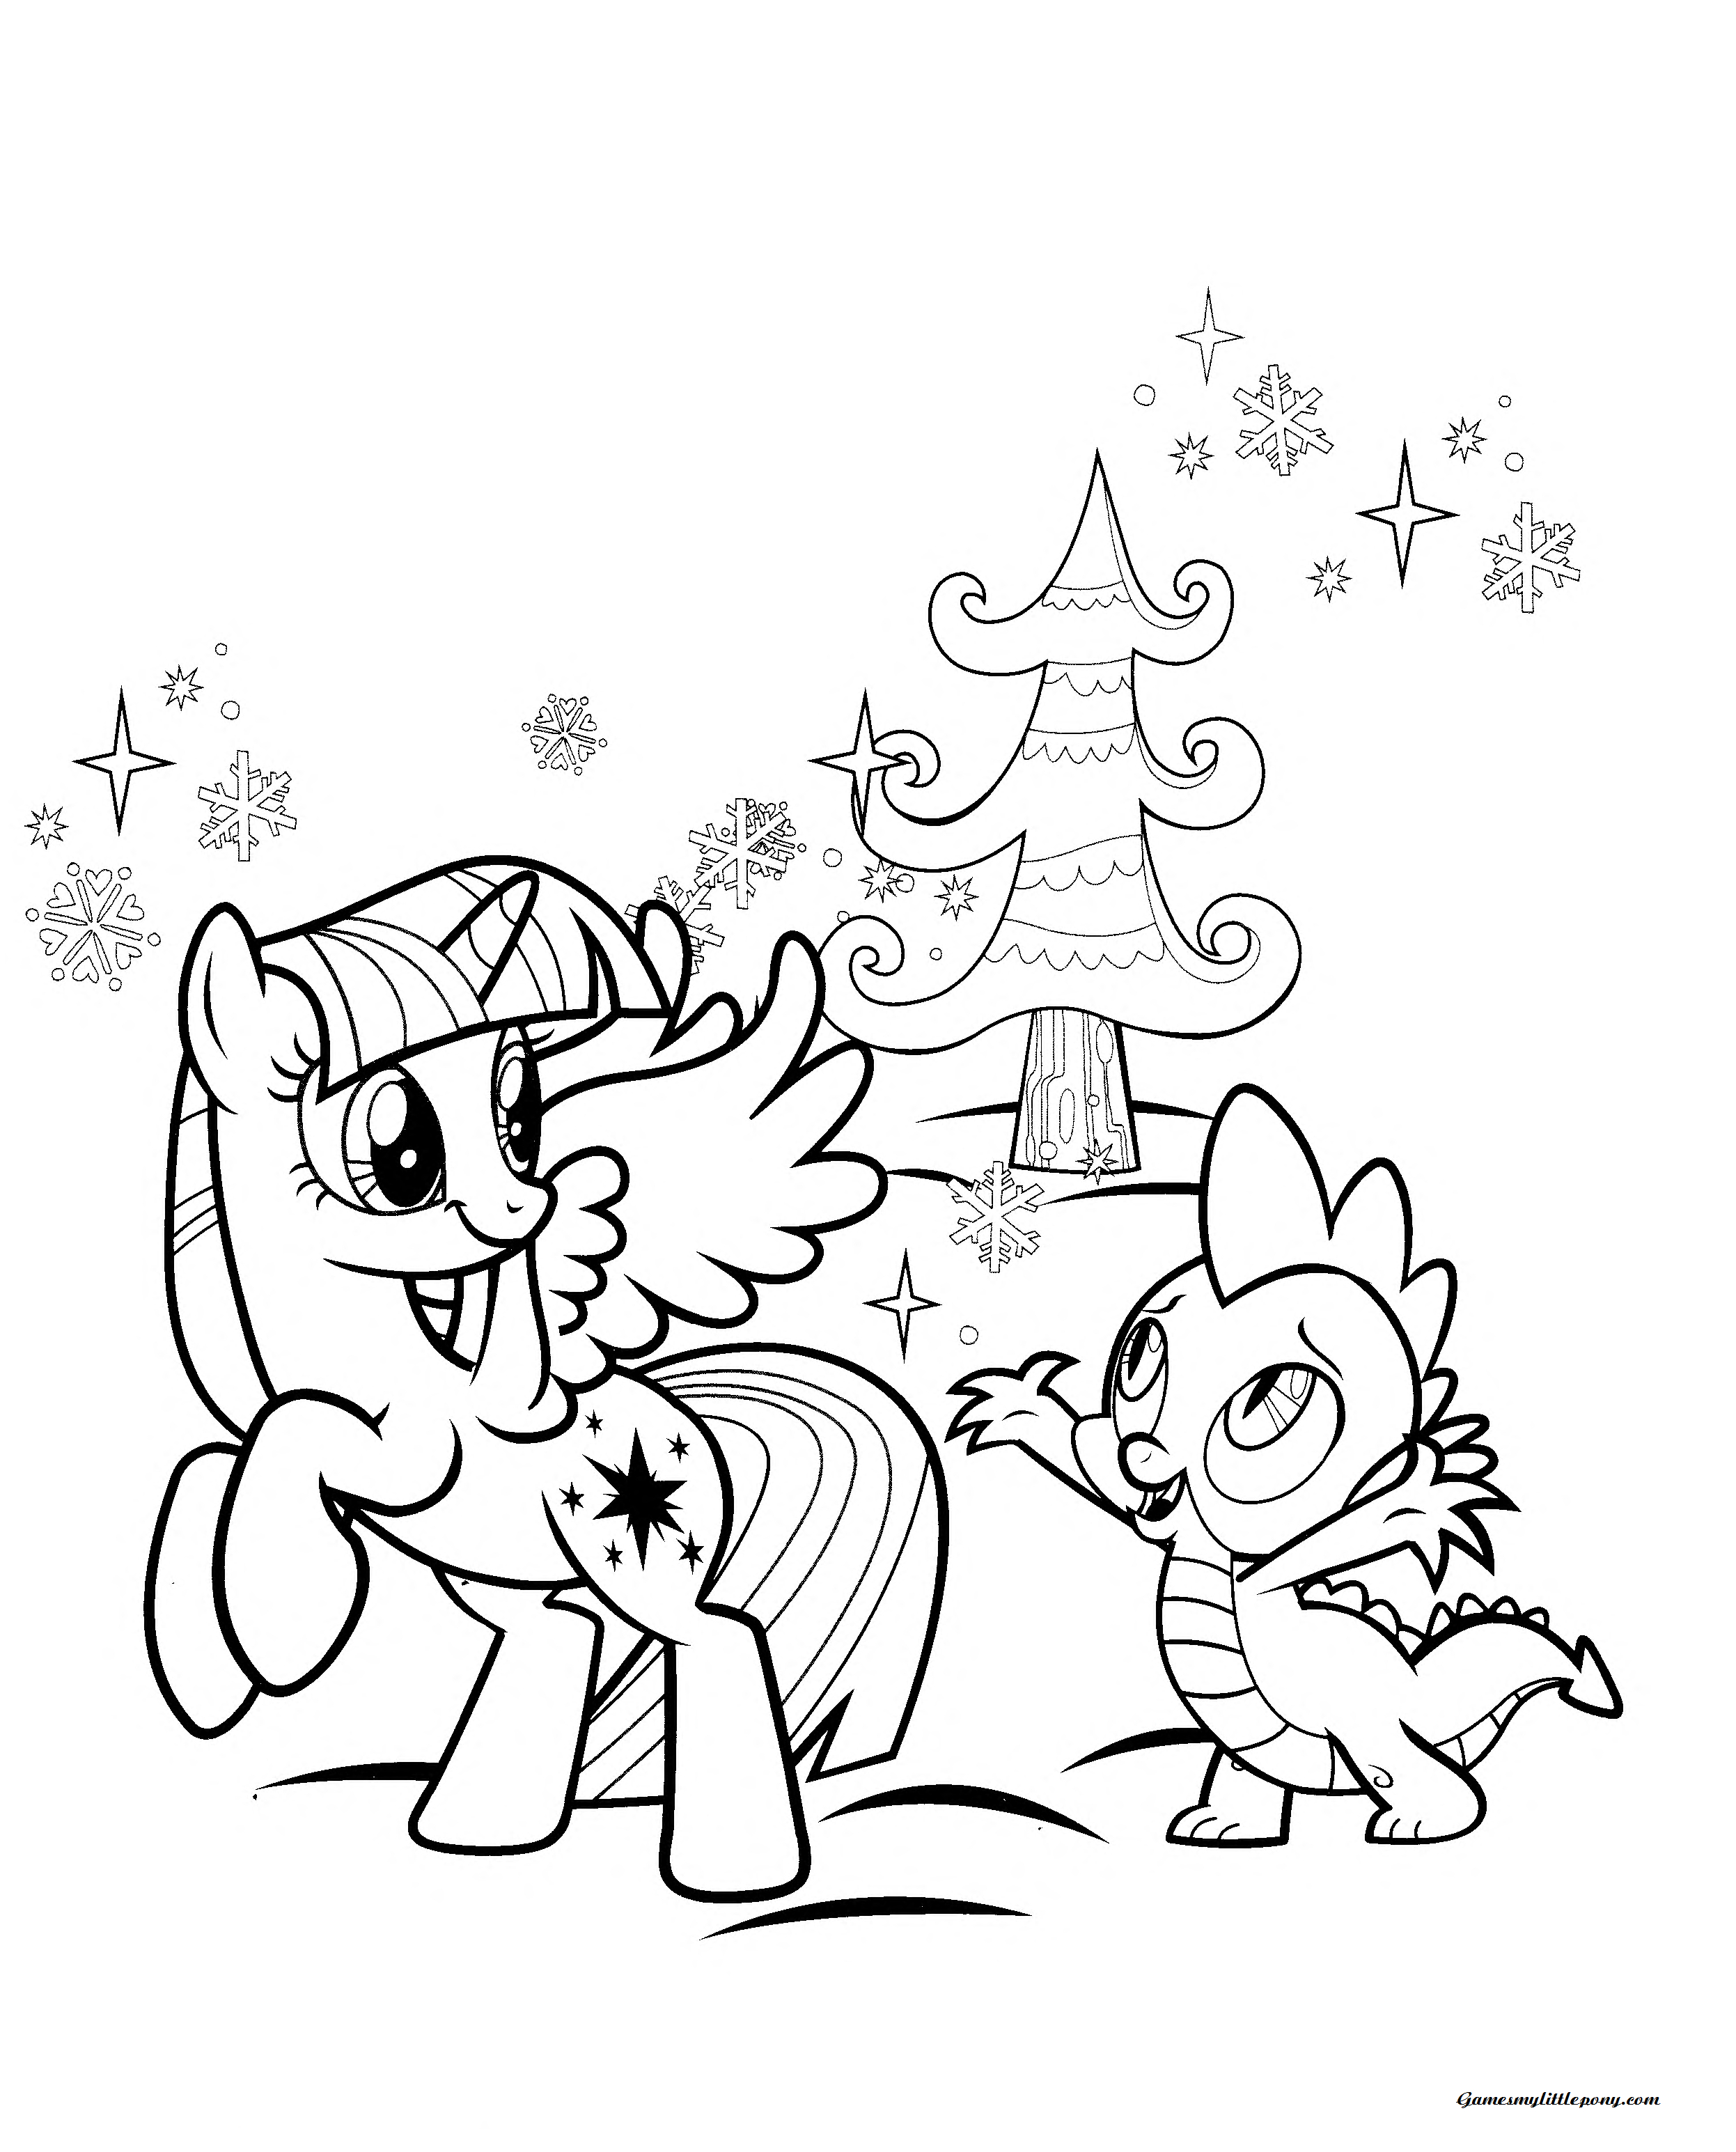 Spike and Applejack Joke Coloring Page